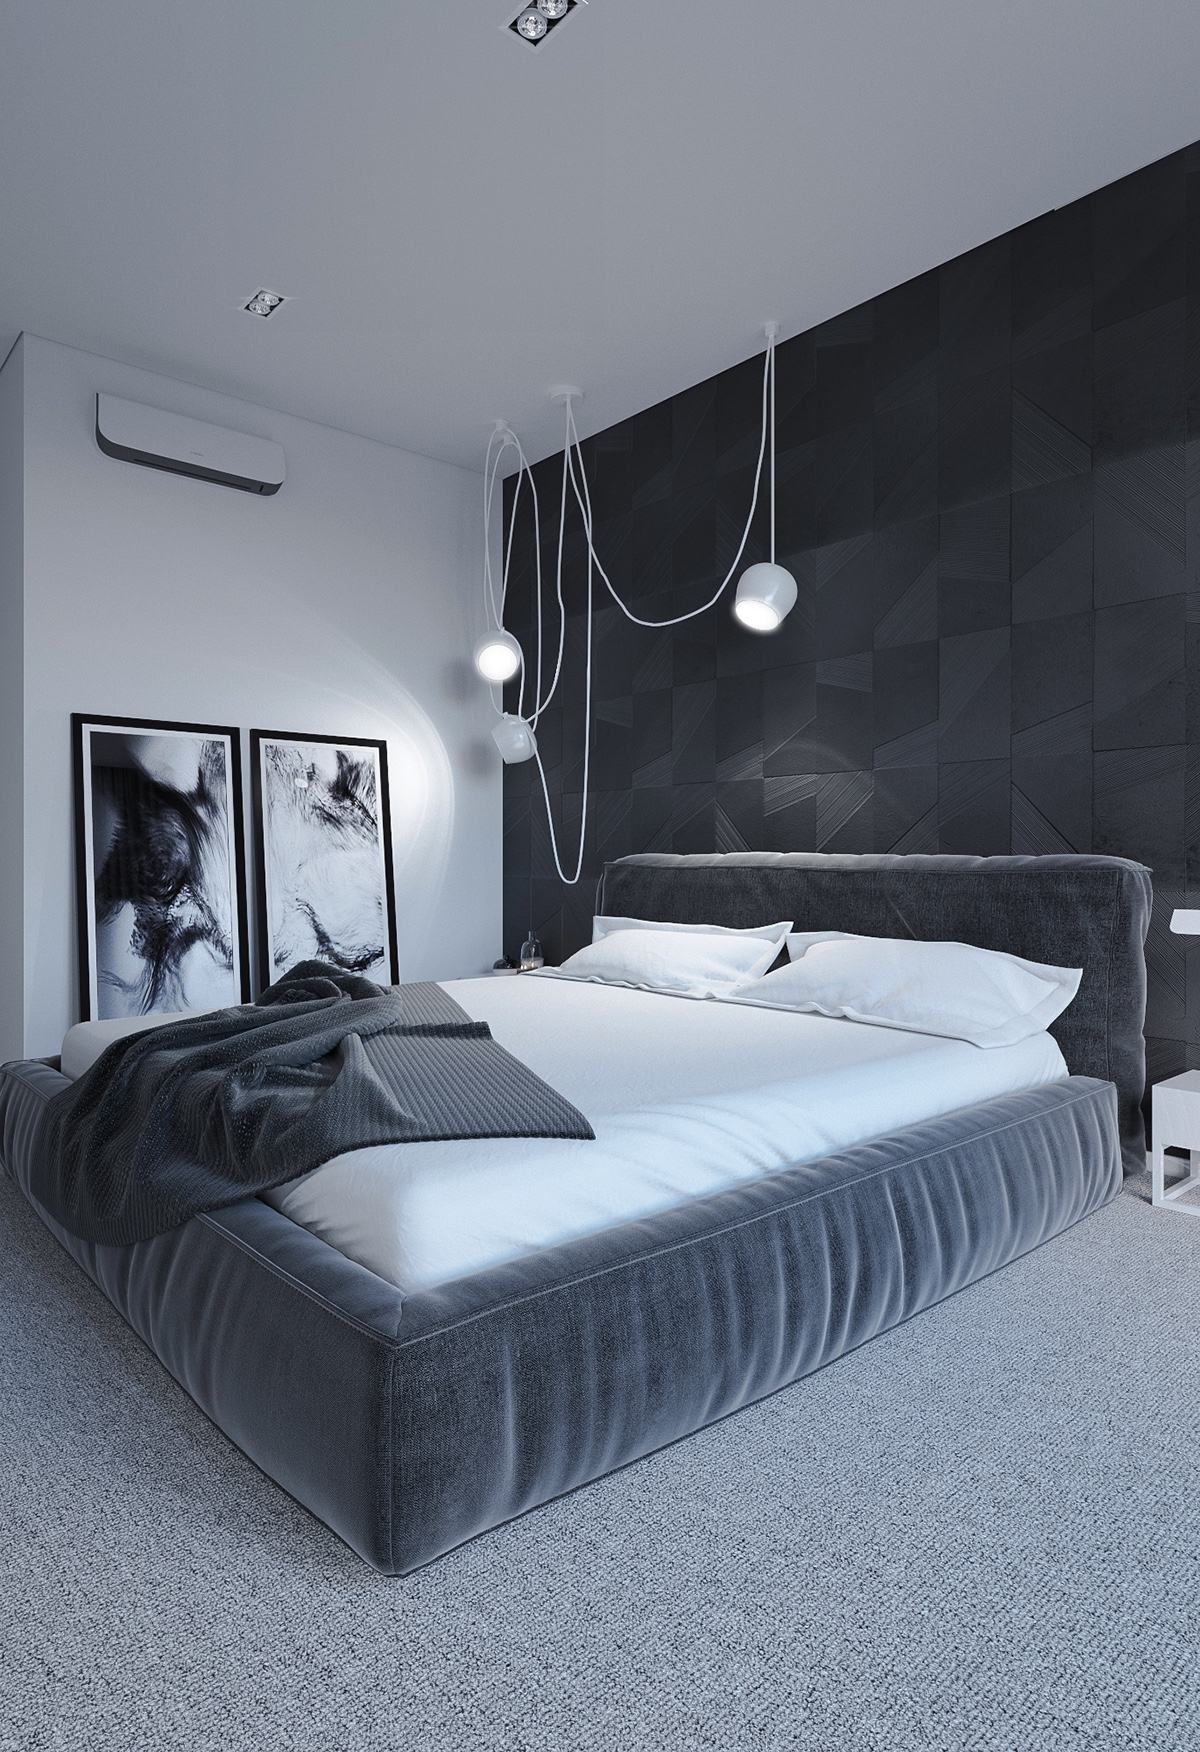 Attrayant Dark Bedroom Dark Bedroom Inspiration For A Good Nights Sleep Geometric  Black Bedroom